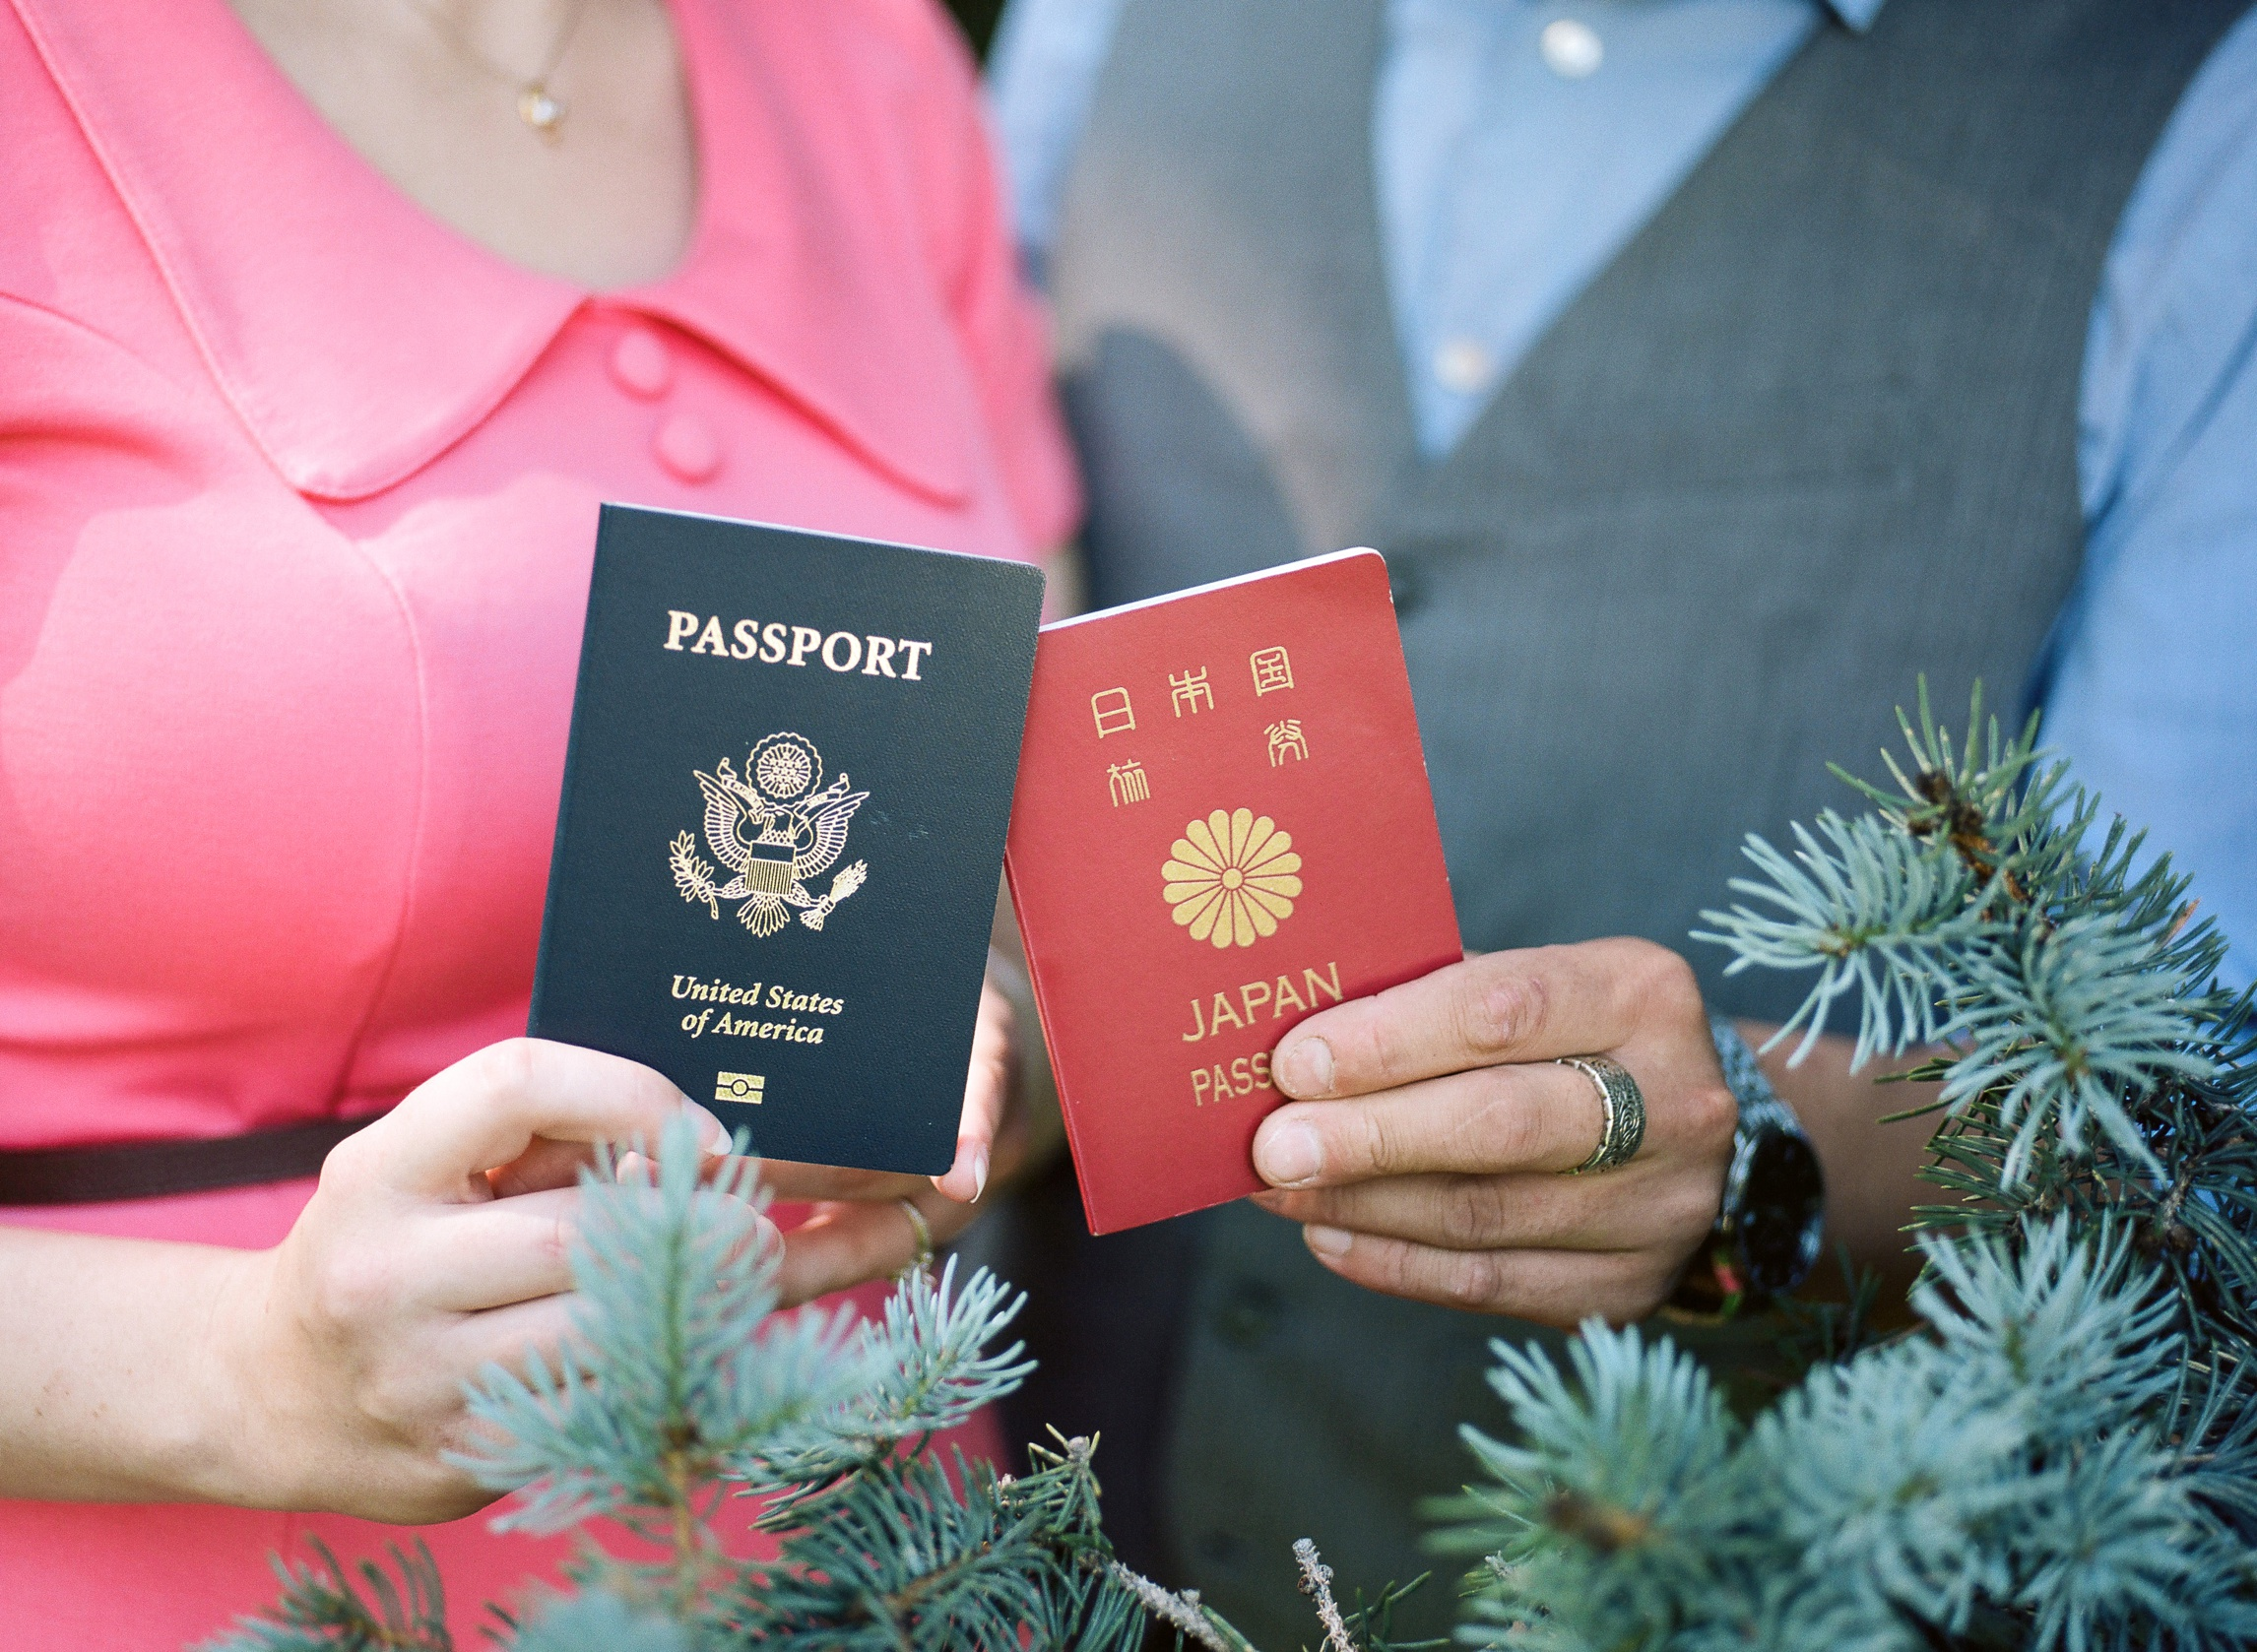 An engaged couples passports from the USA and from Japan. Engagement photography by Sonja Salzburg of Sonja K Photography.